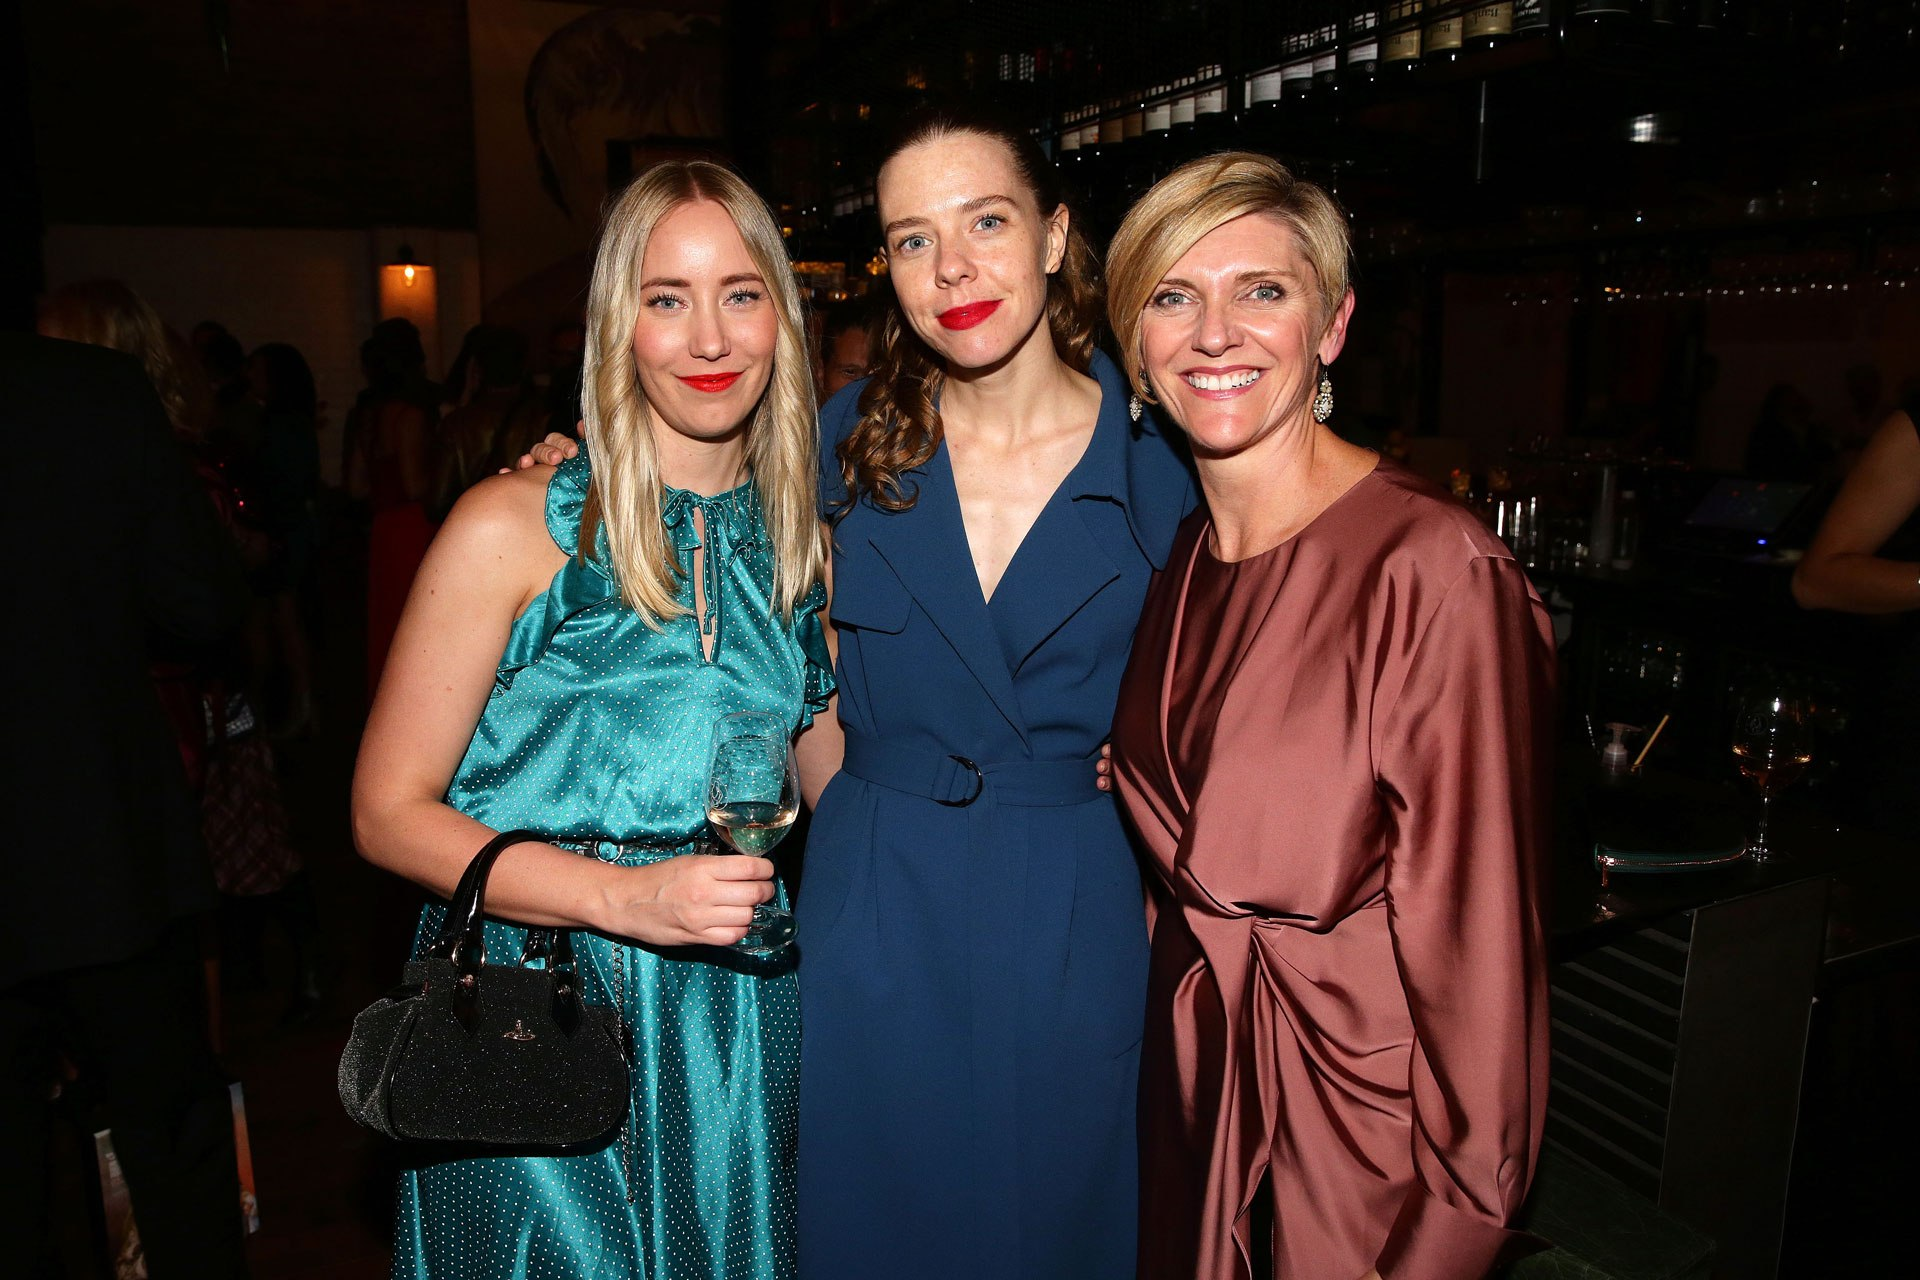 Guests attend the AMP Retail industry networking dinner during VAMFF. Image credit: Lucas Dawson